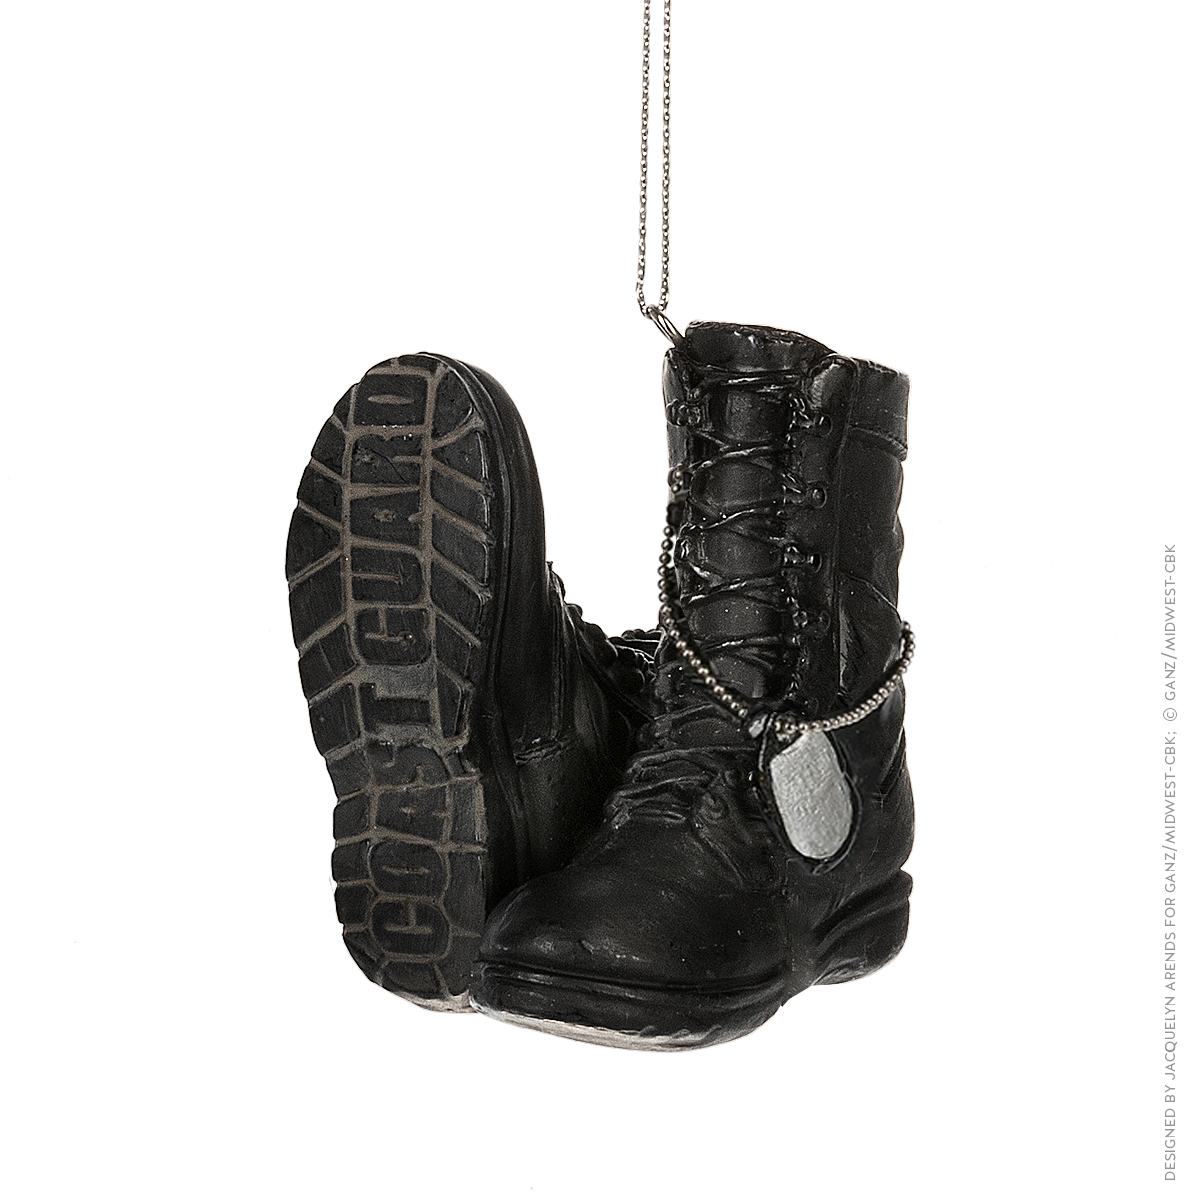 Specialty Ornaments Coast Guard boots ornament by Jacquelyn Arends; © Ganz/Midwest-CBK 2019